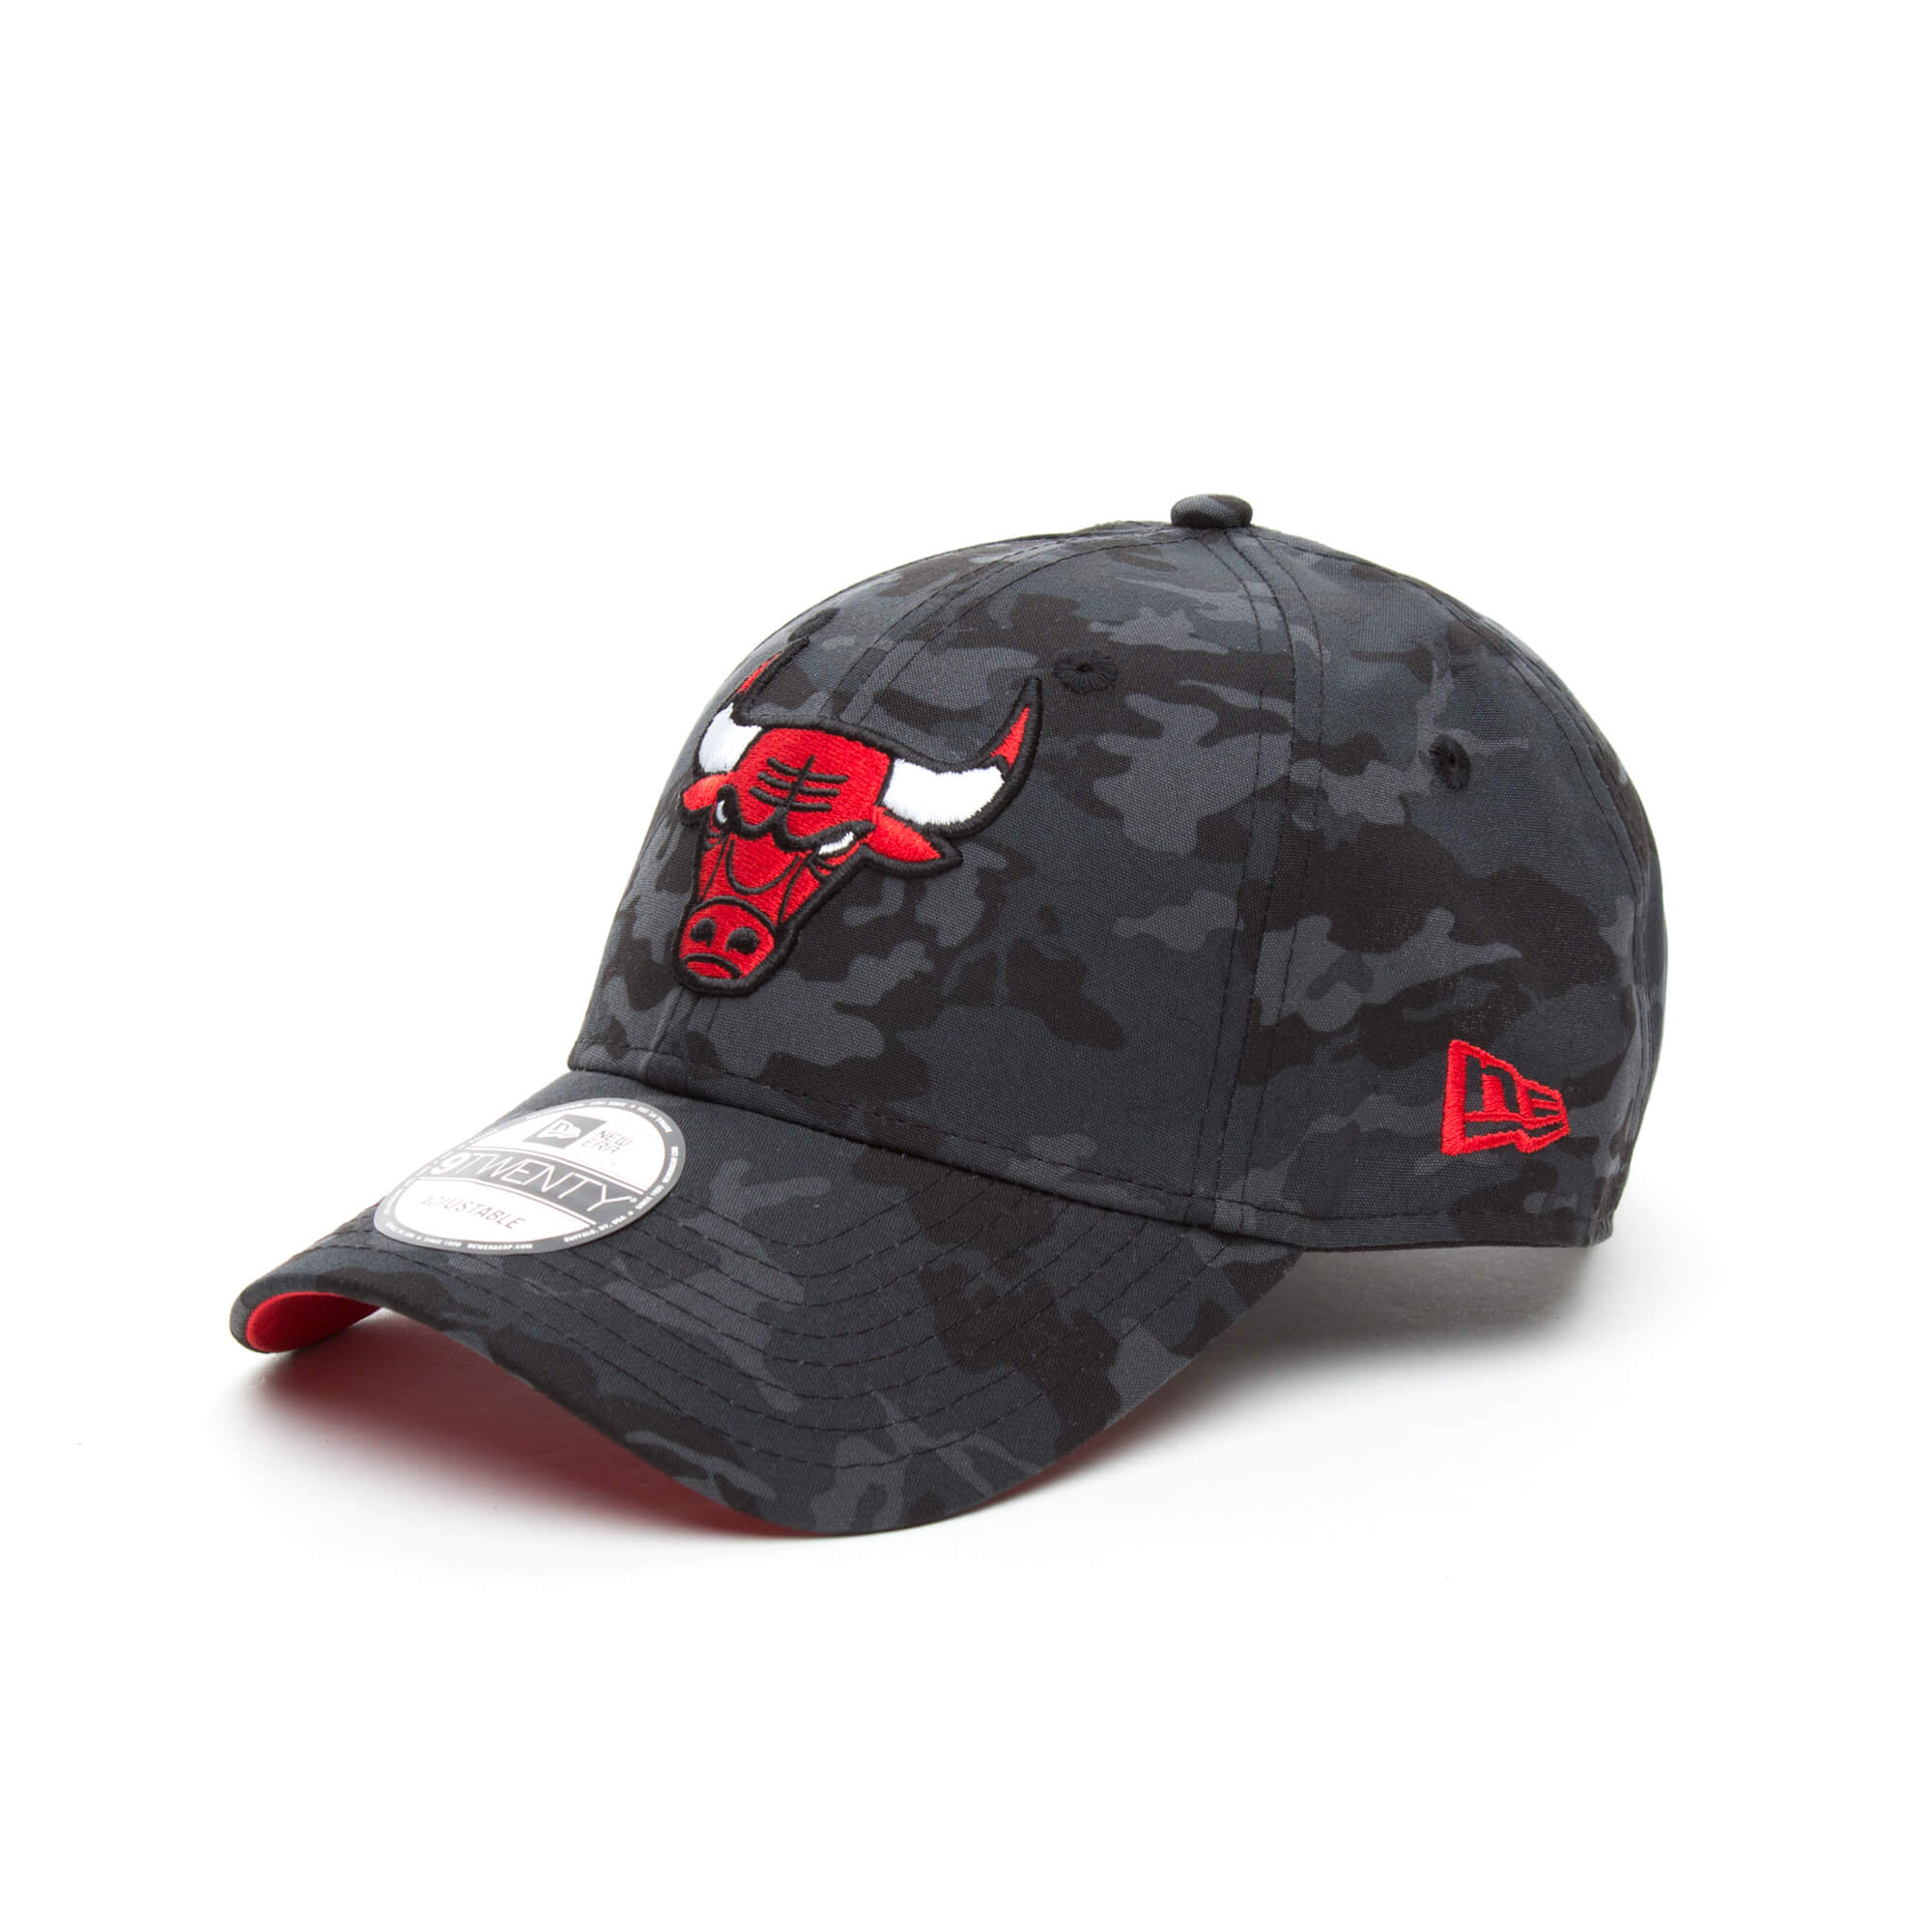 New Era Unisex GRİ Şapka